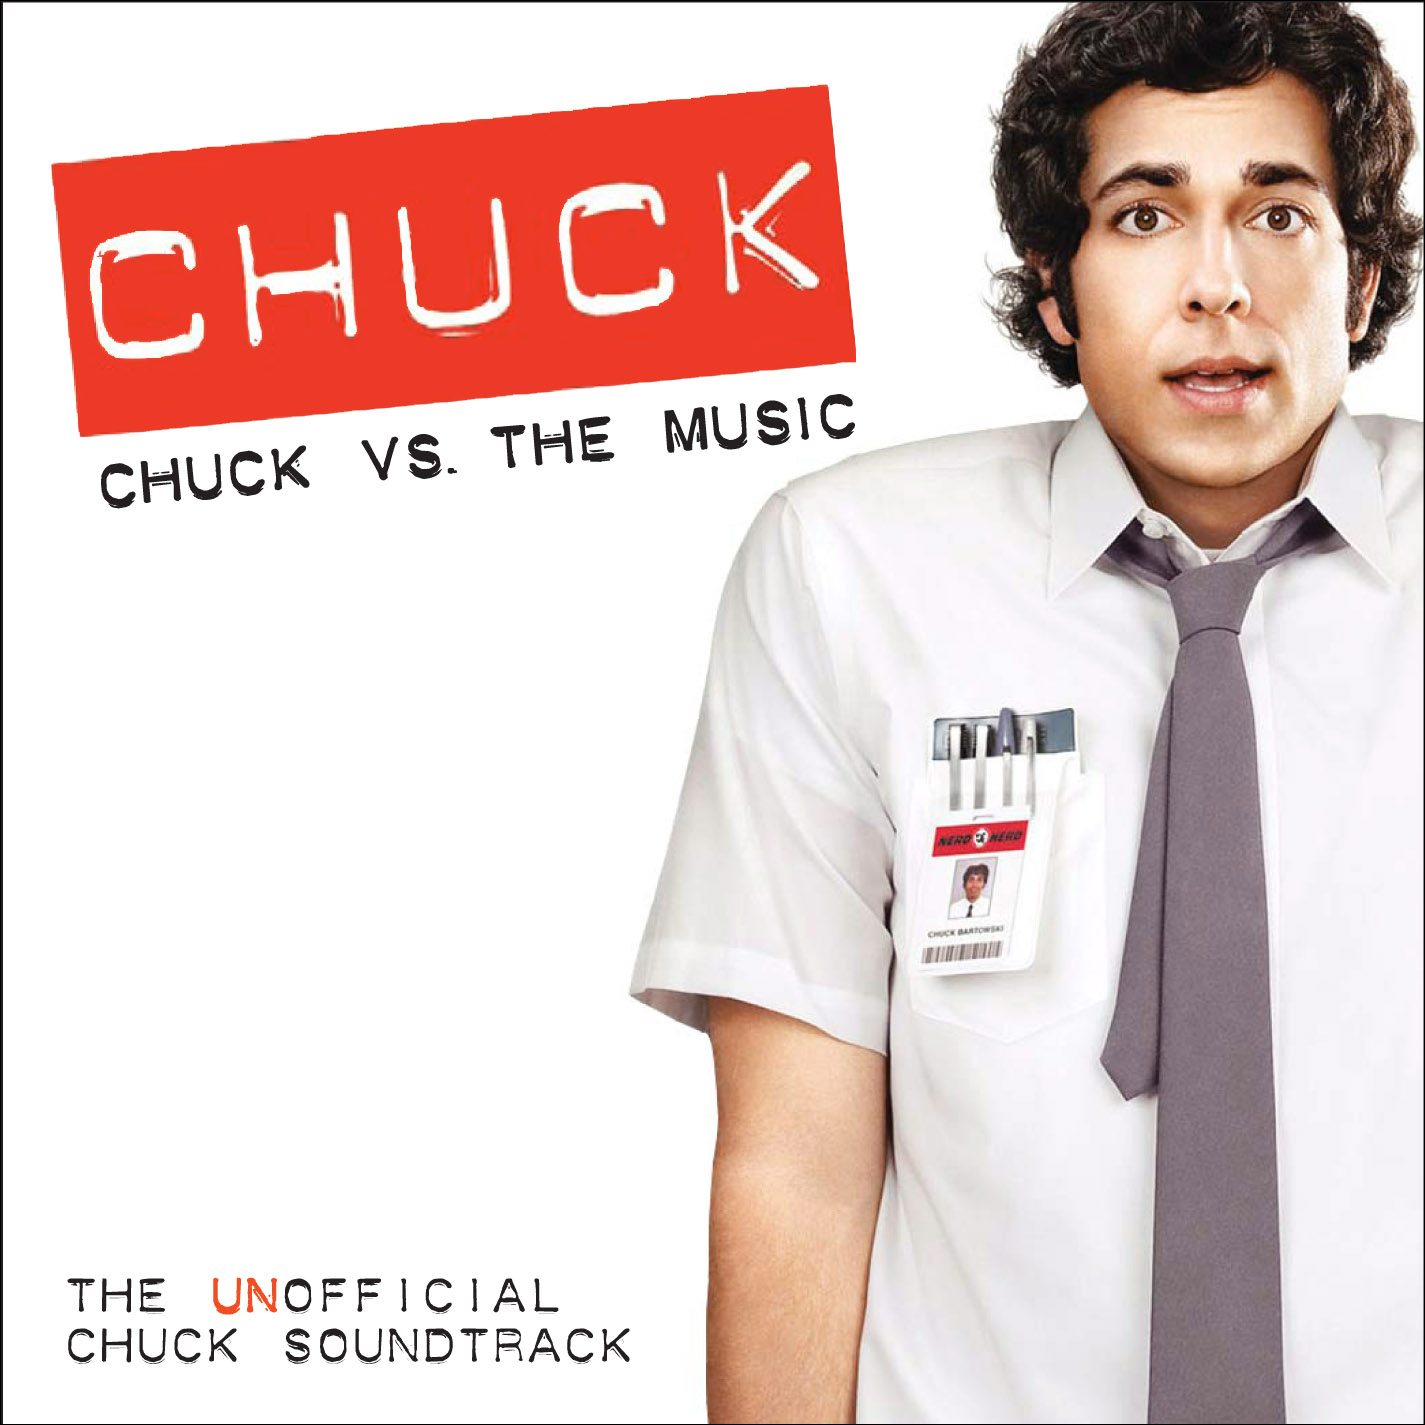 Chuck soundtrack is that